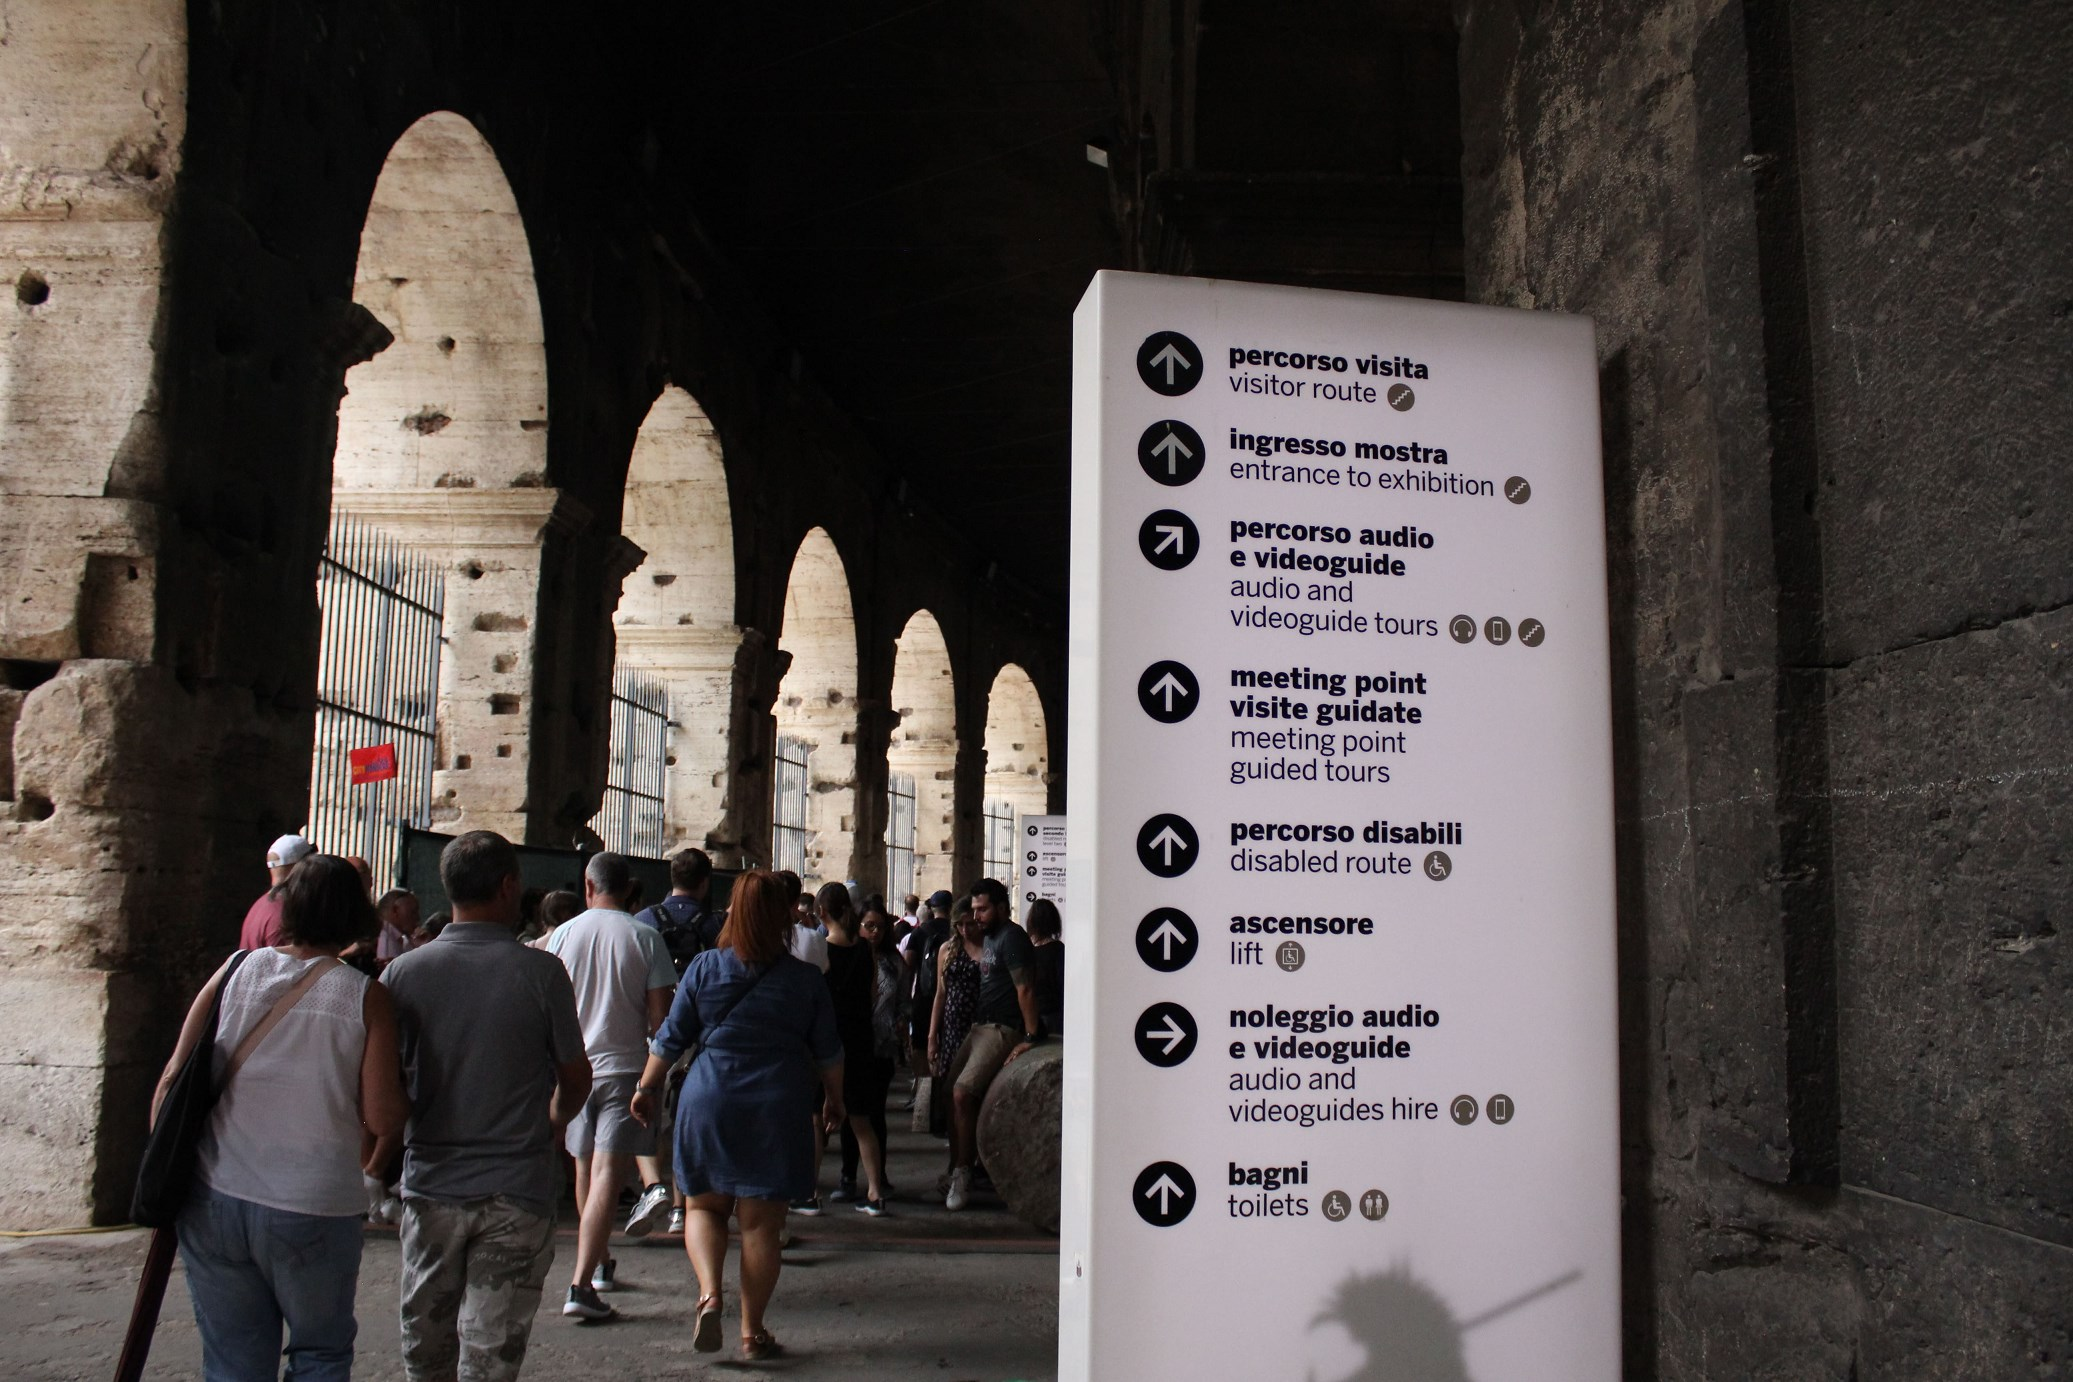 palatine hill tickets Infos accessibilty restrooms